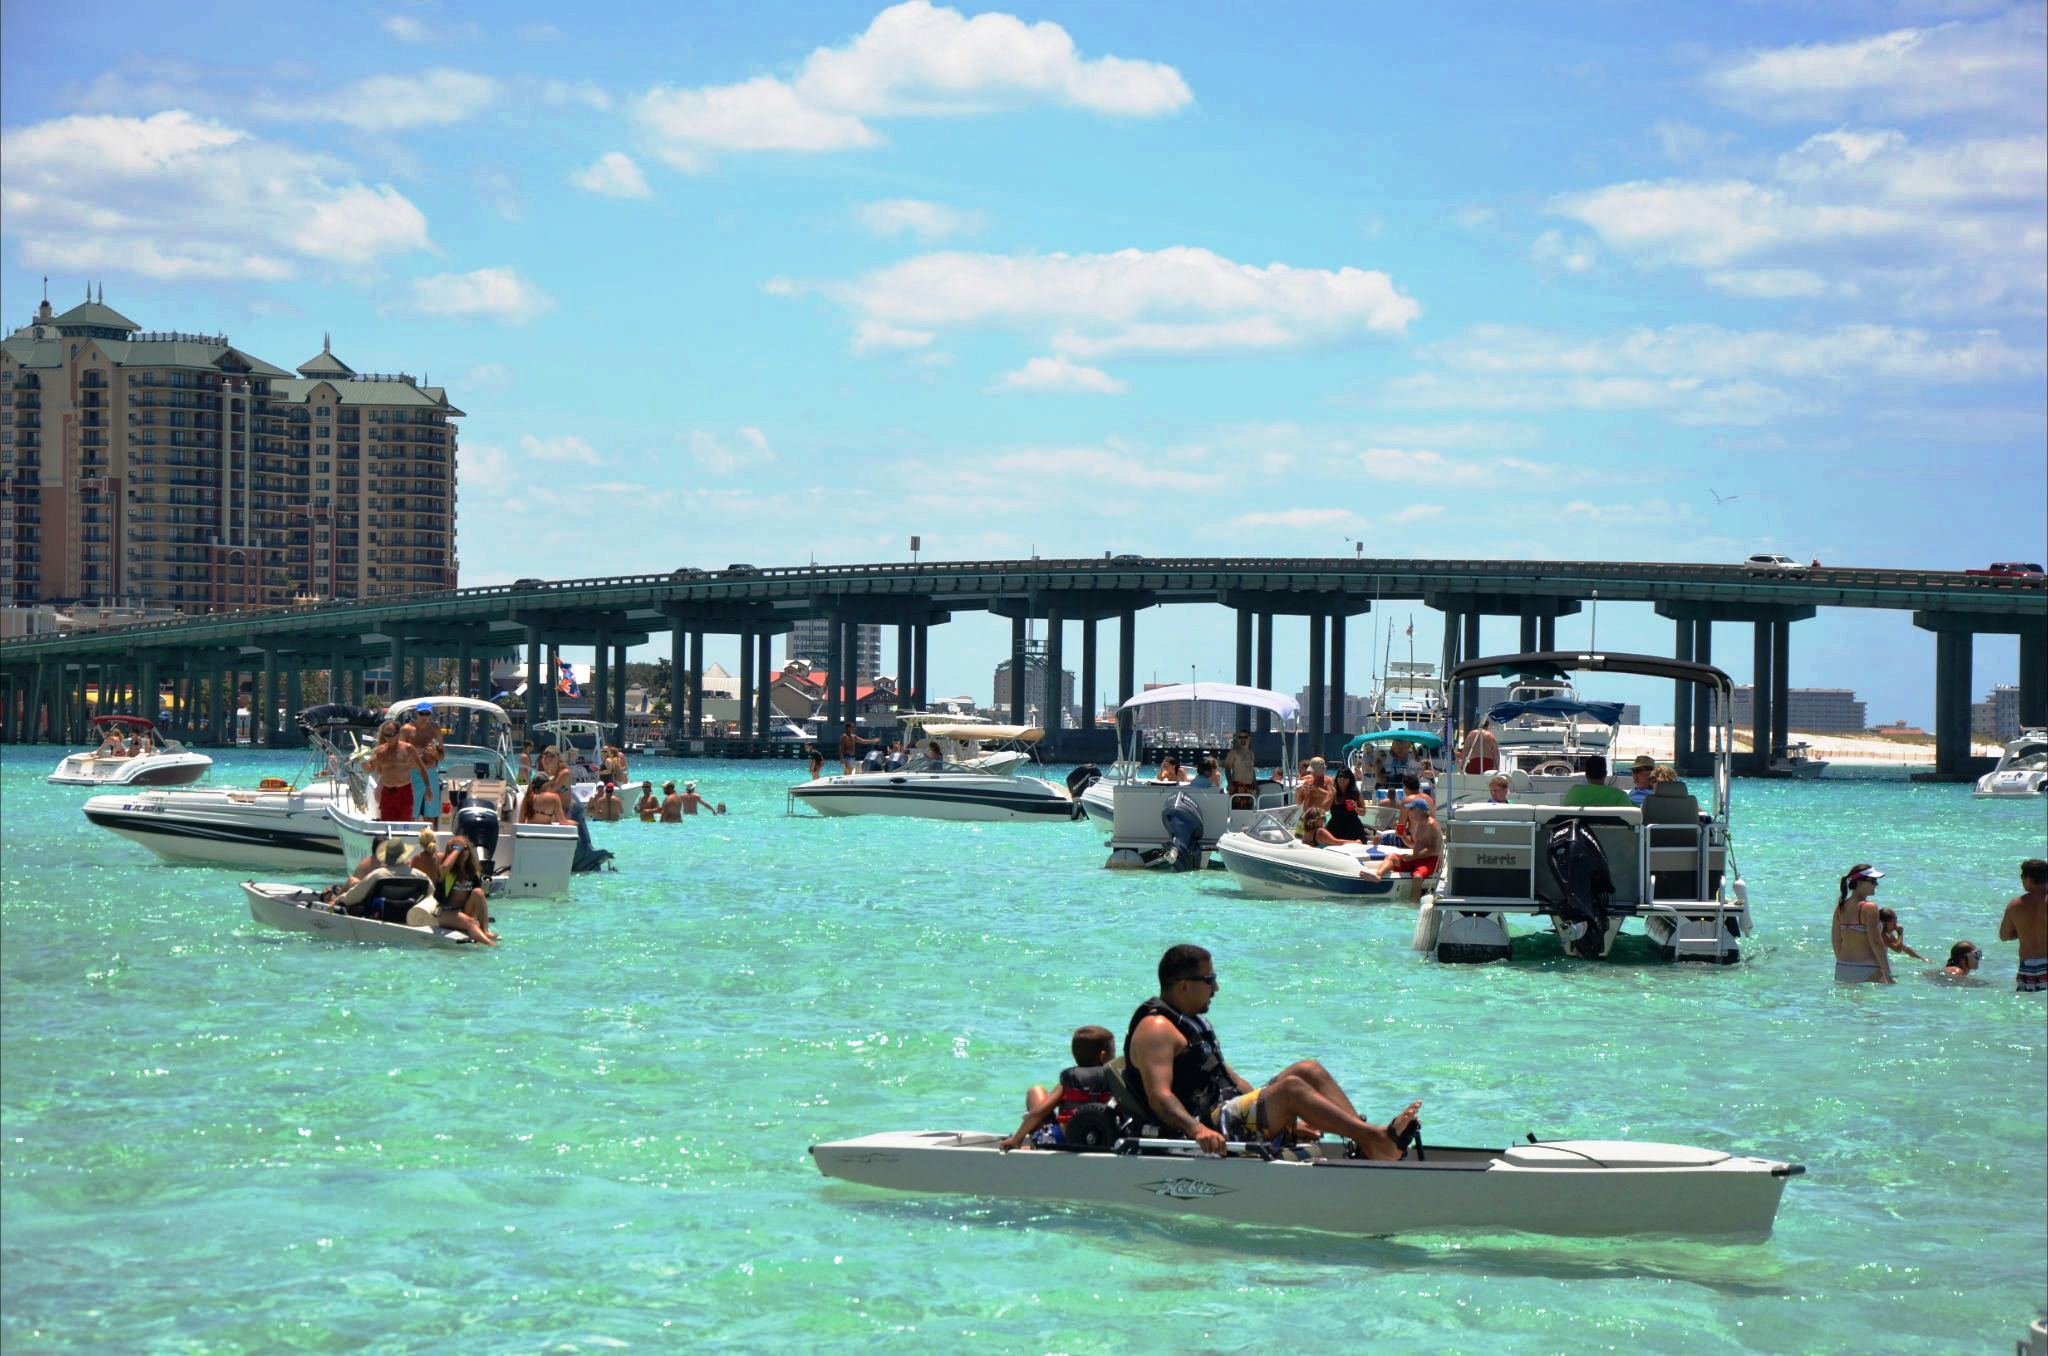 Crab Island Destin Florida - Things To Do - Crab Island In Destin Florida Map